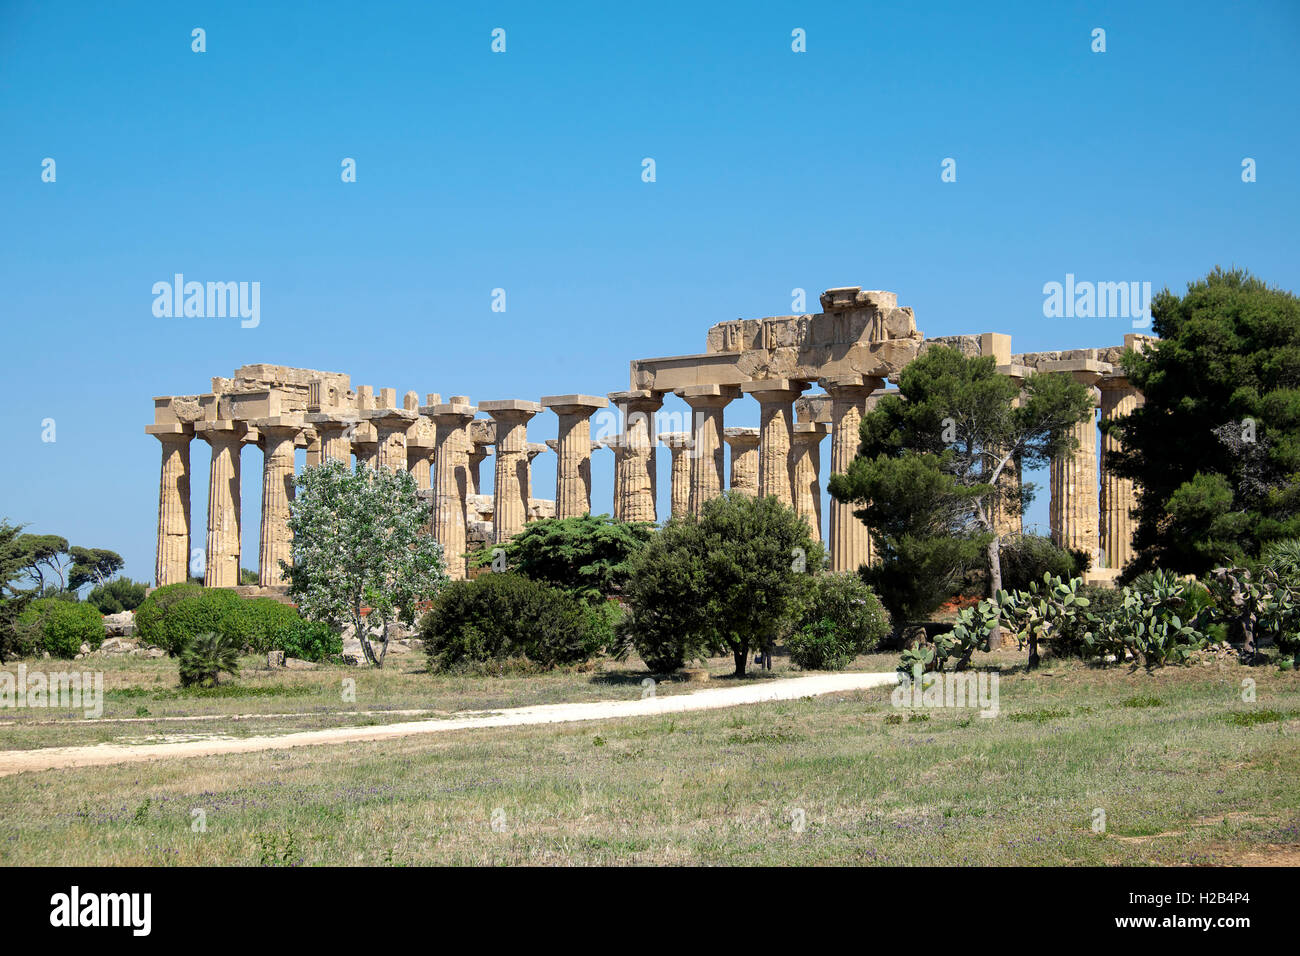 Greek ancient Temple E, Archaeological Park Selinunte, Selinunte, Sicily, Italy - Stock Image